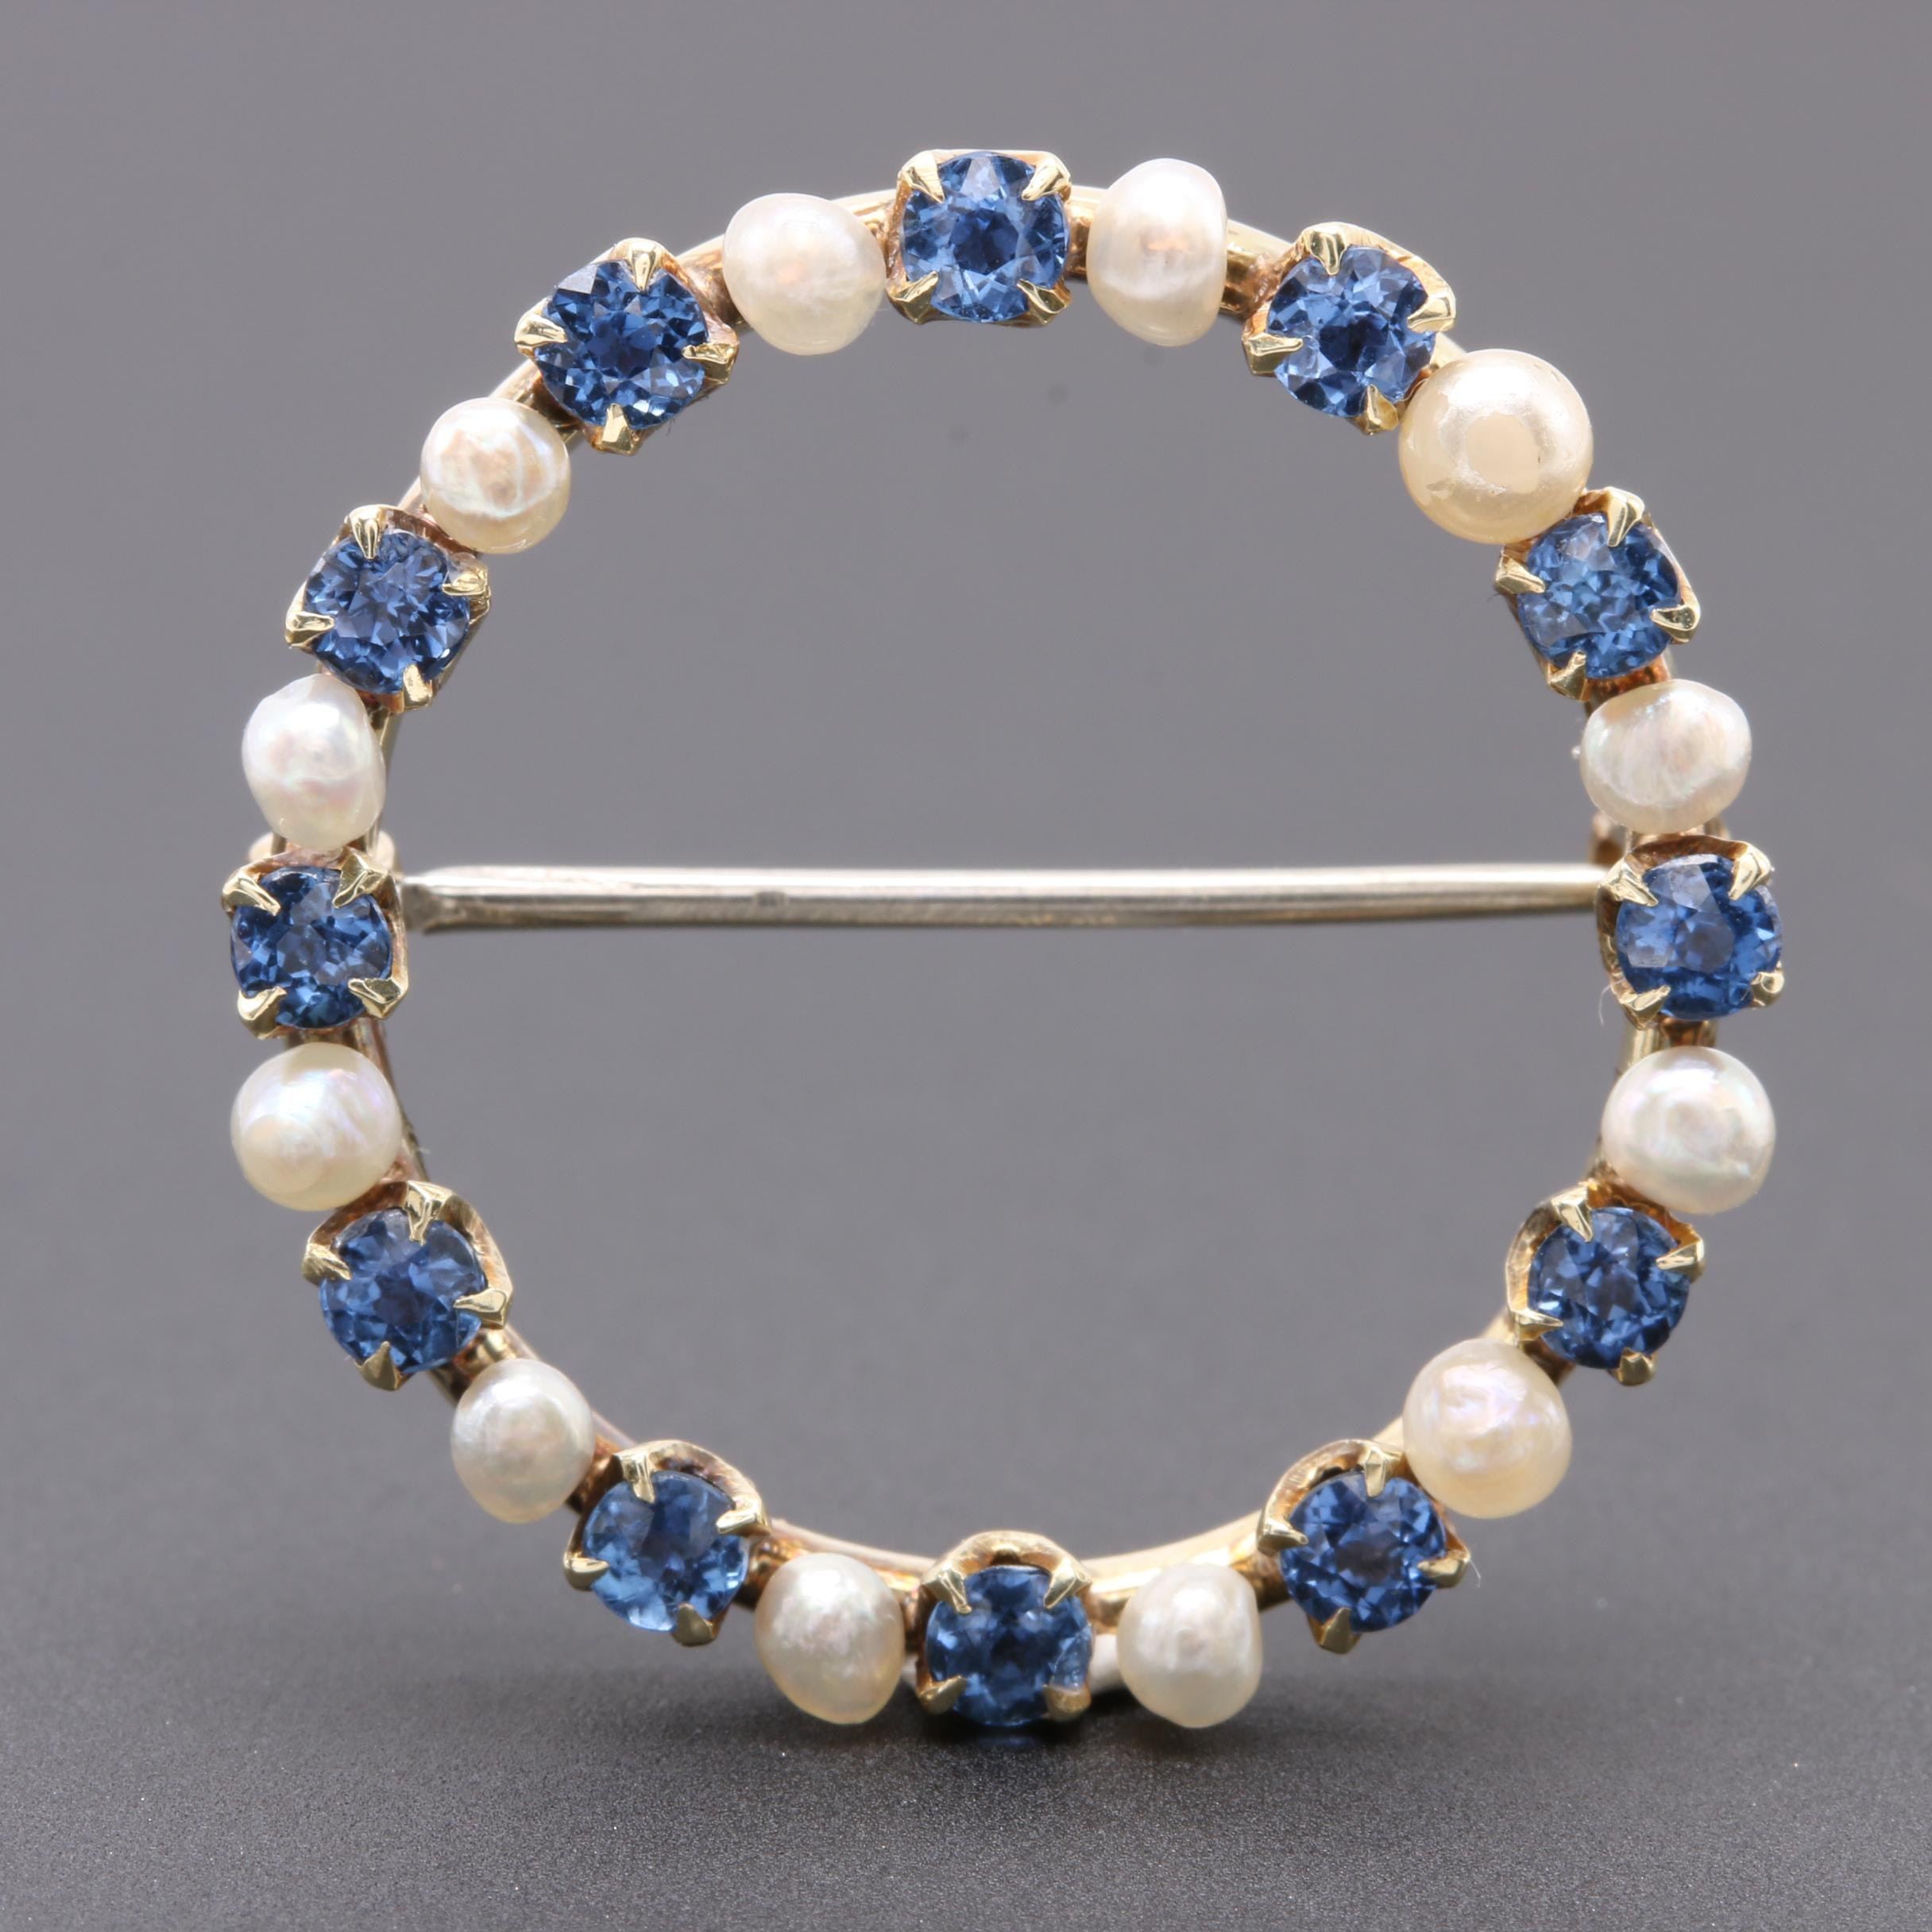 Vintage 14K Yellow Gold Blue Sapphire and Seed Pearl Brooch